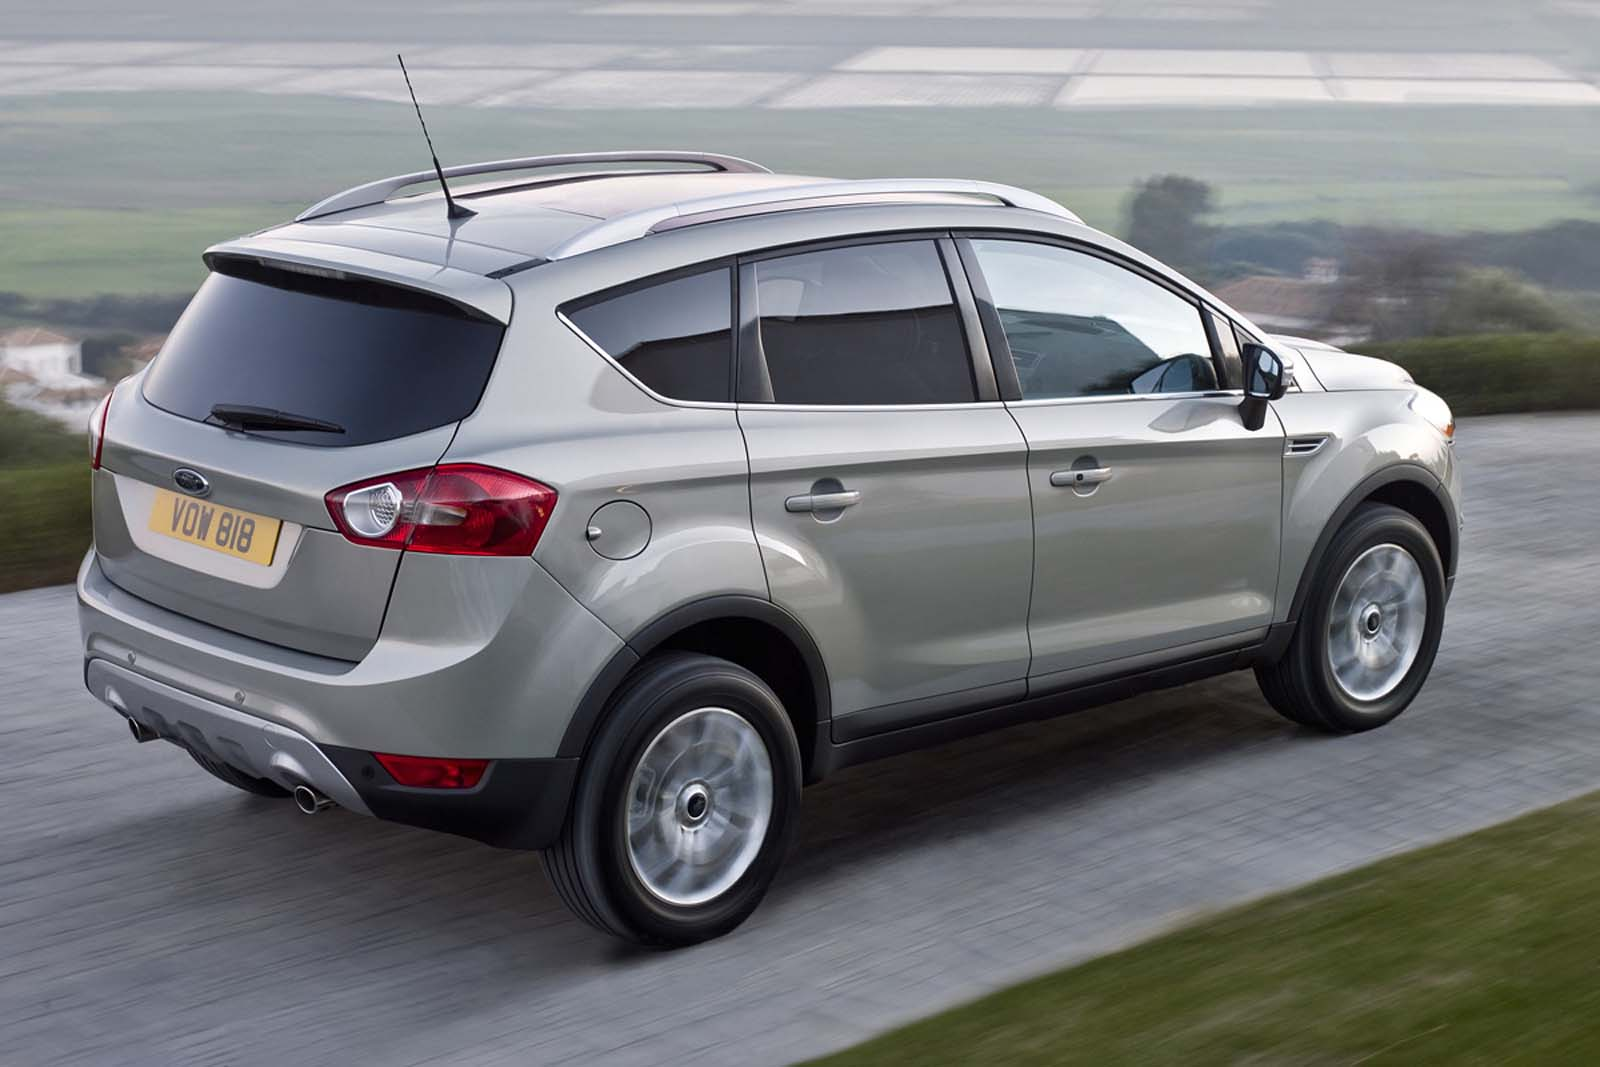 Exterieur_Ford-Kuga_3